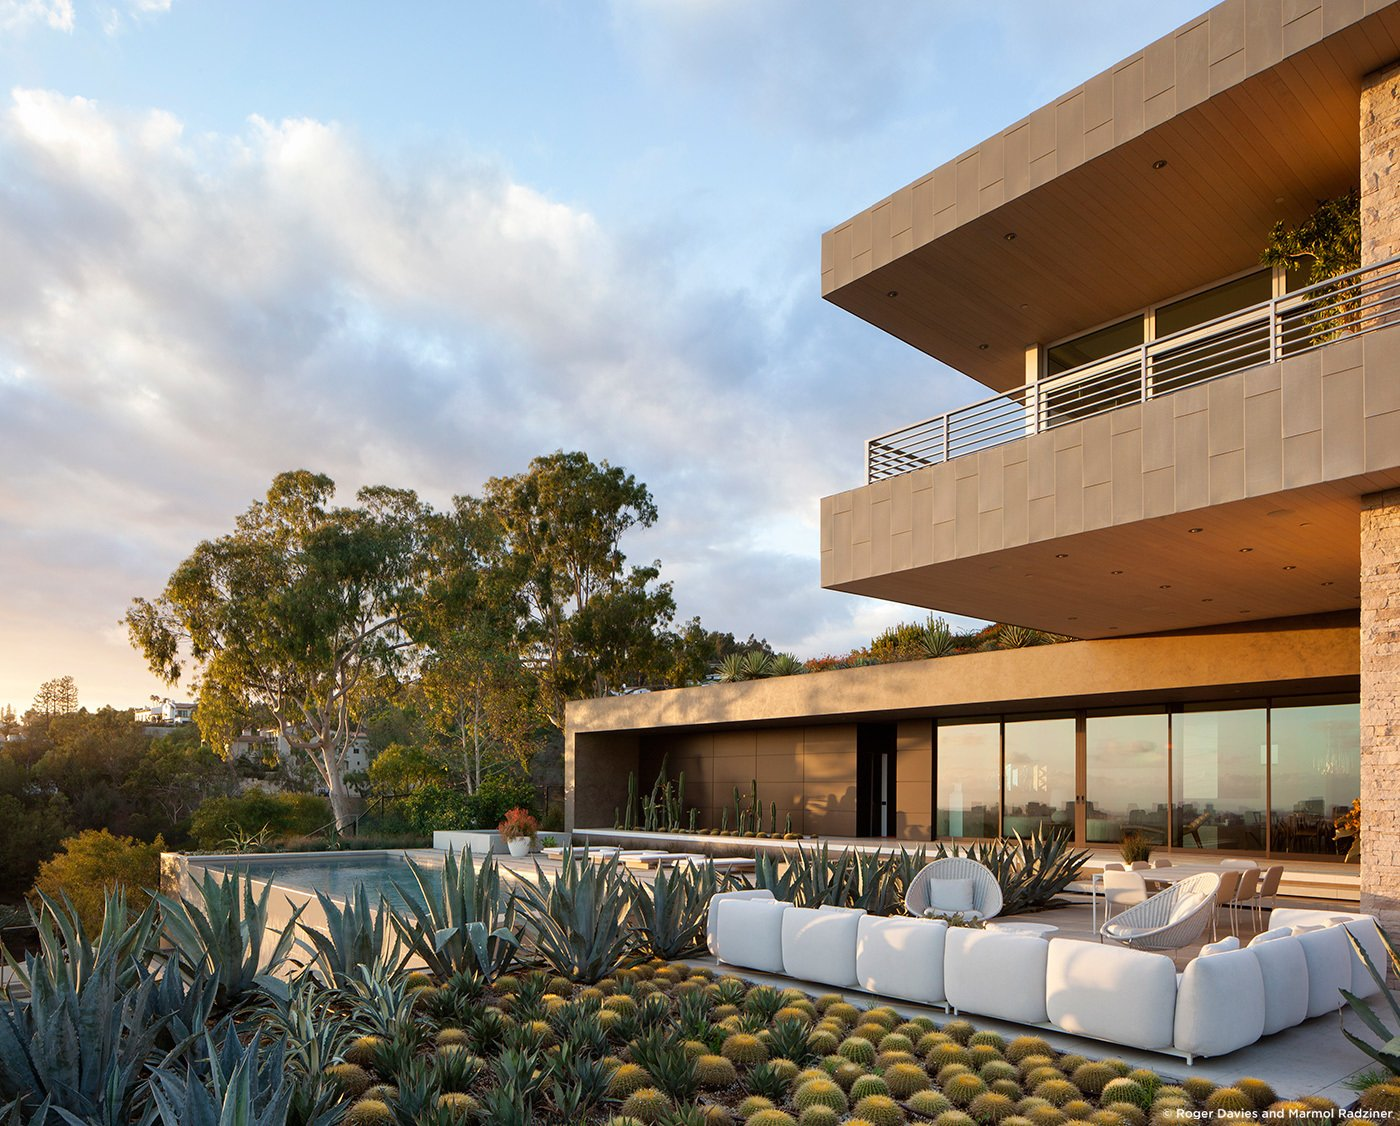 #SummitridgeResidence #modern #midcentury #levels #exterior #outside #outdoor #landscape #green #geometry #pool #view #seating #deck #structure #BeverlyHills #MarmolRadziner  Summitridge Residence